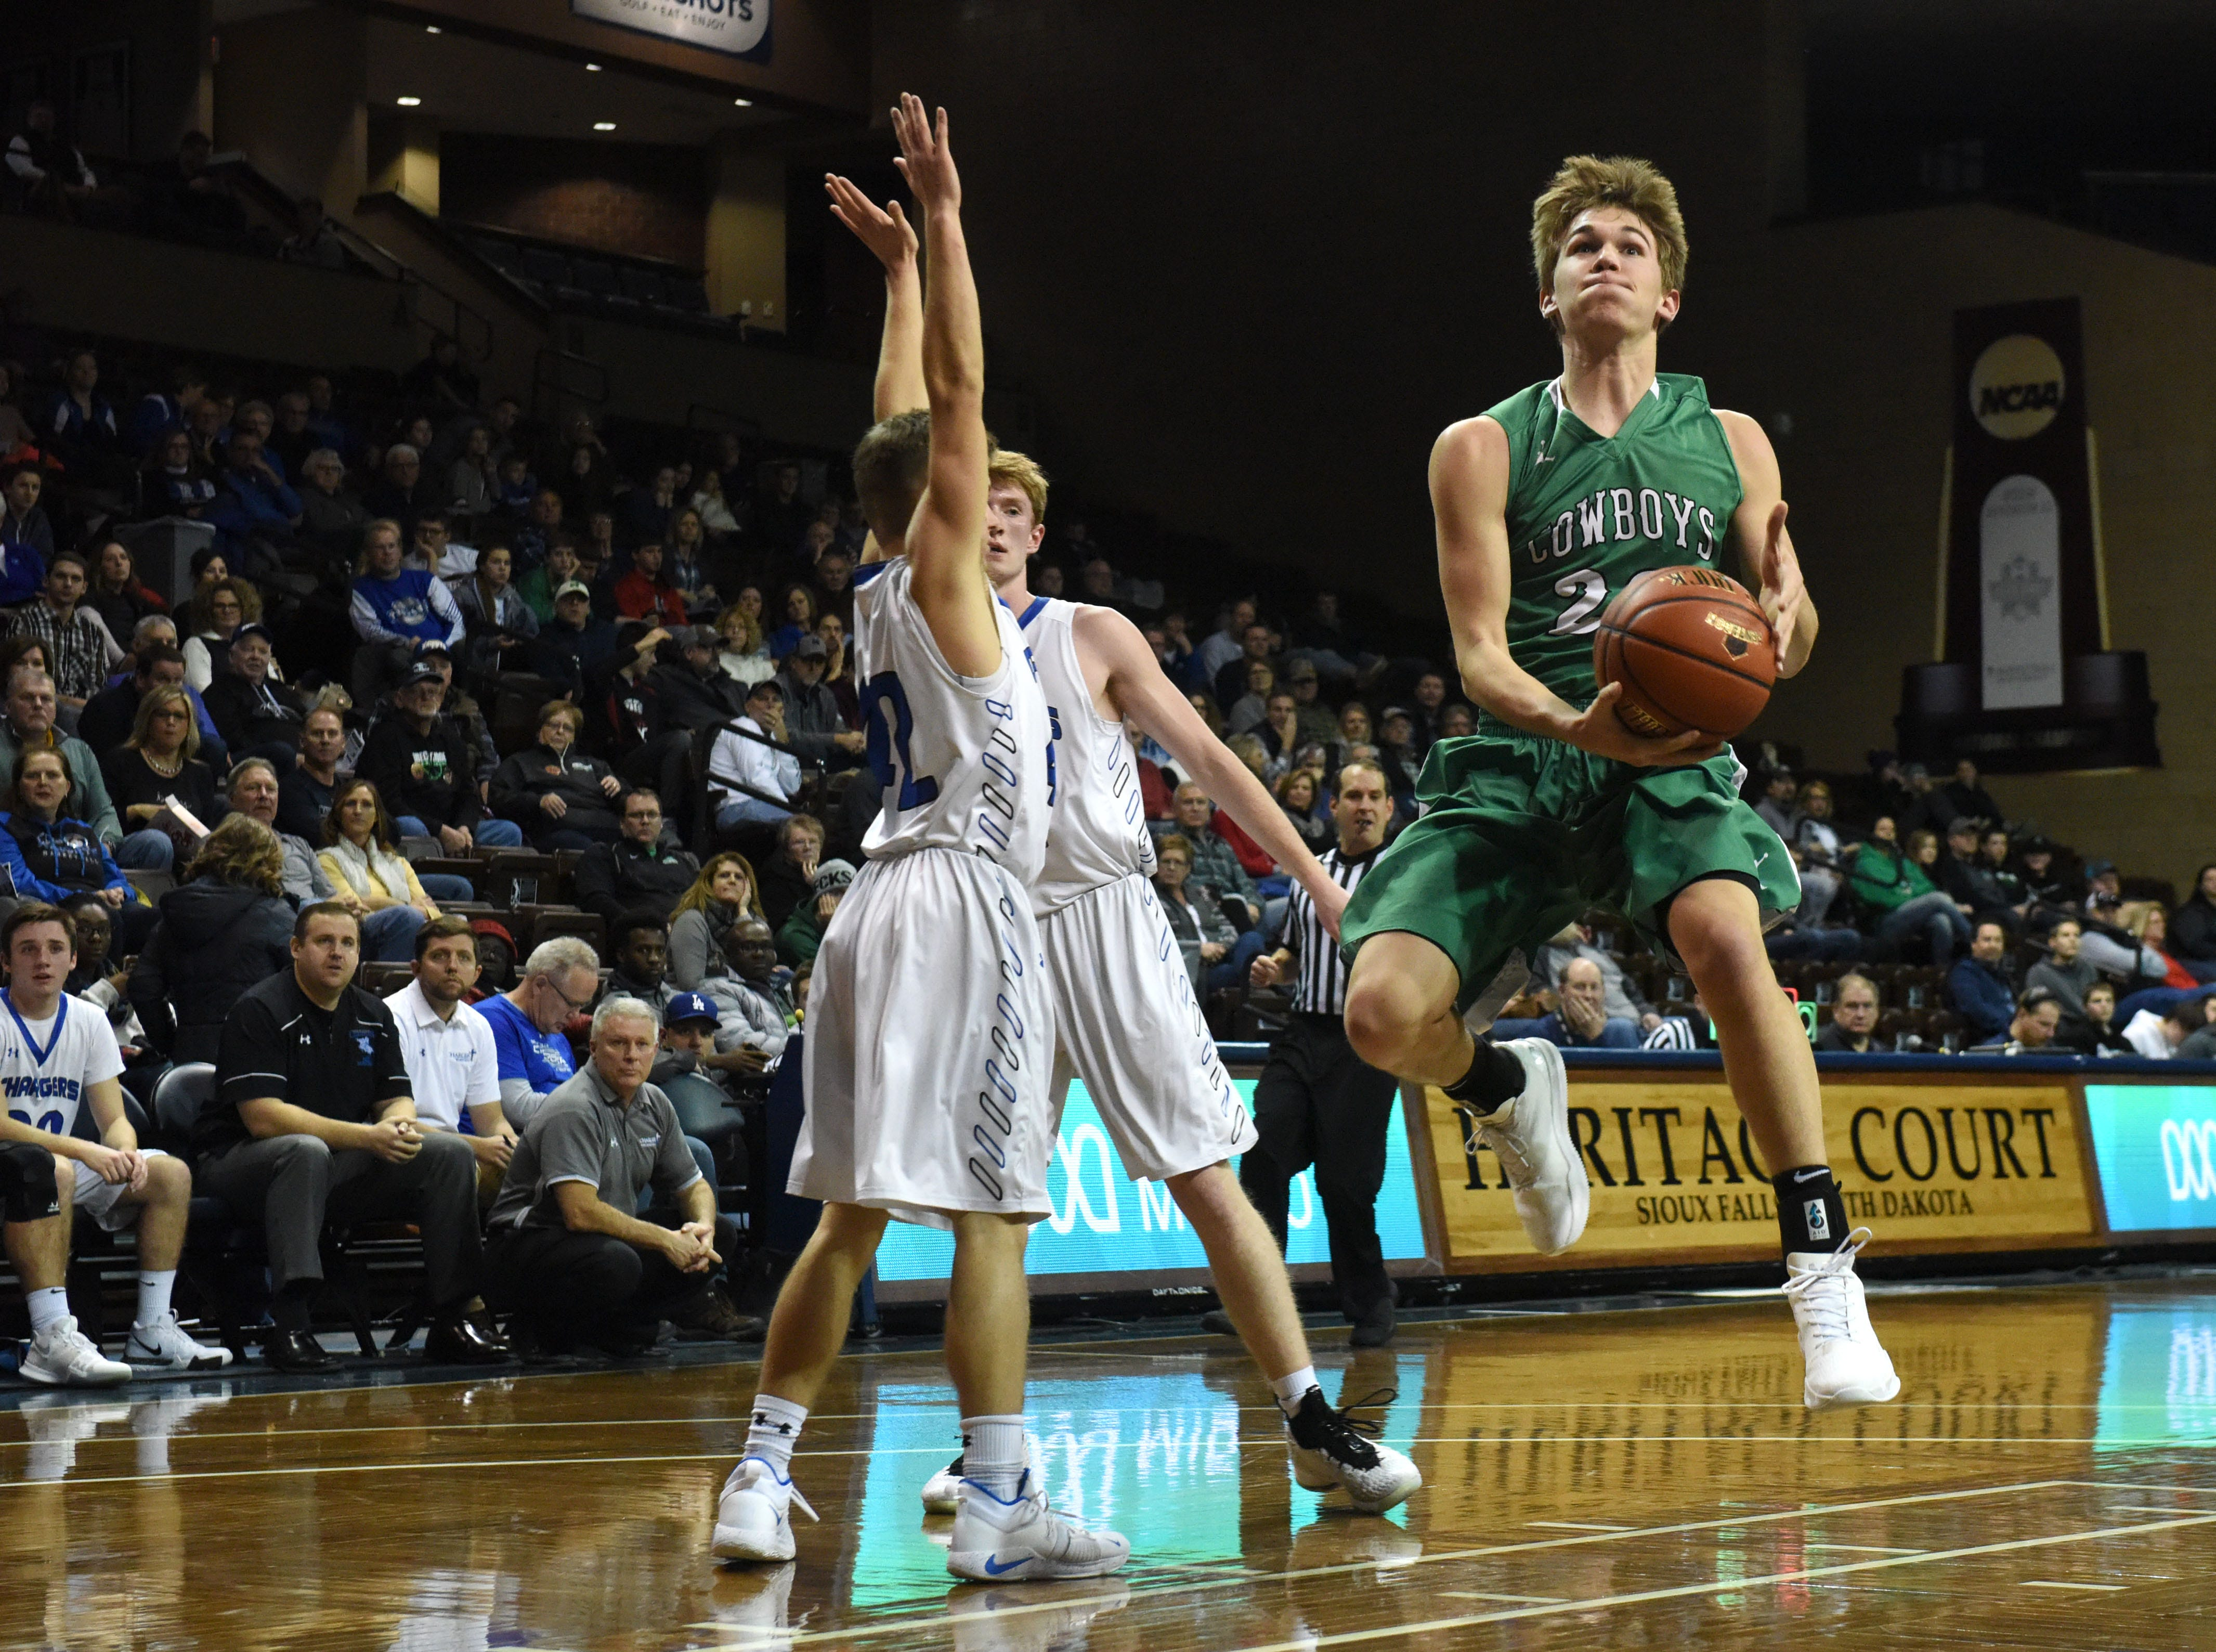 Breckenridge's Max Johnson (20) goes up for a shot during a game against Sioux Falls Christian at the Hoop City Classic at the Sanford Pentagon in Sioux Falls, S.D., Saturday, Dec. 29, 2018.